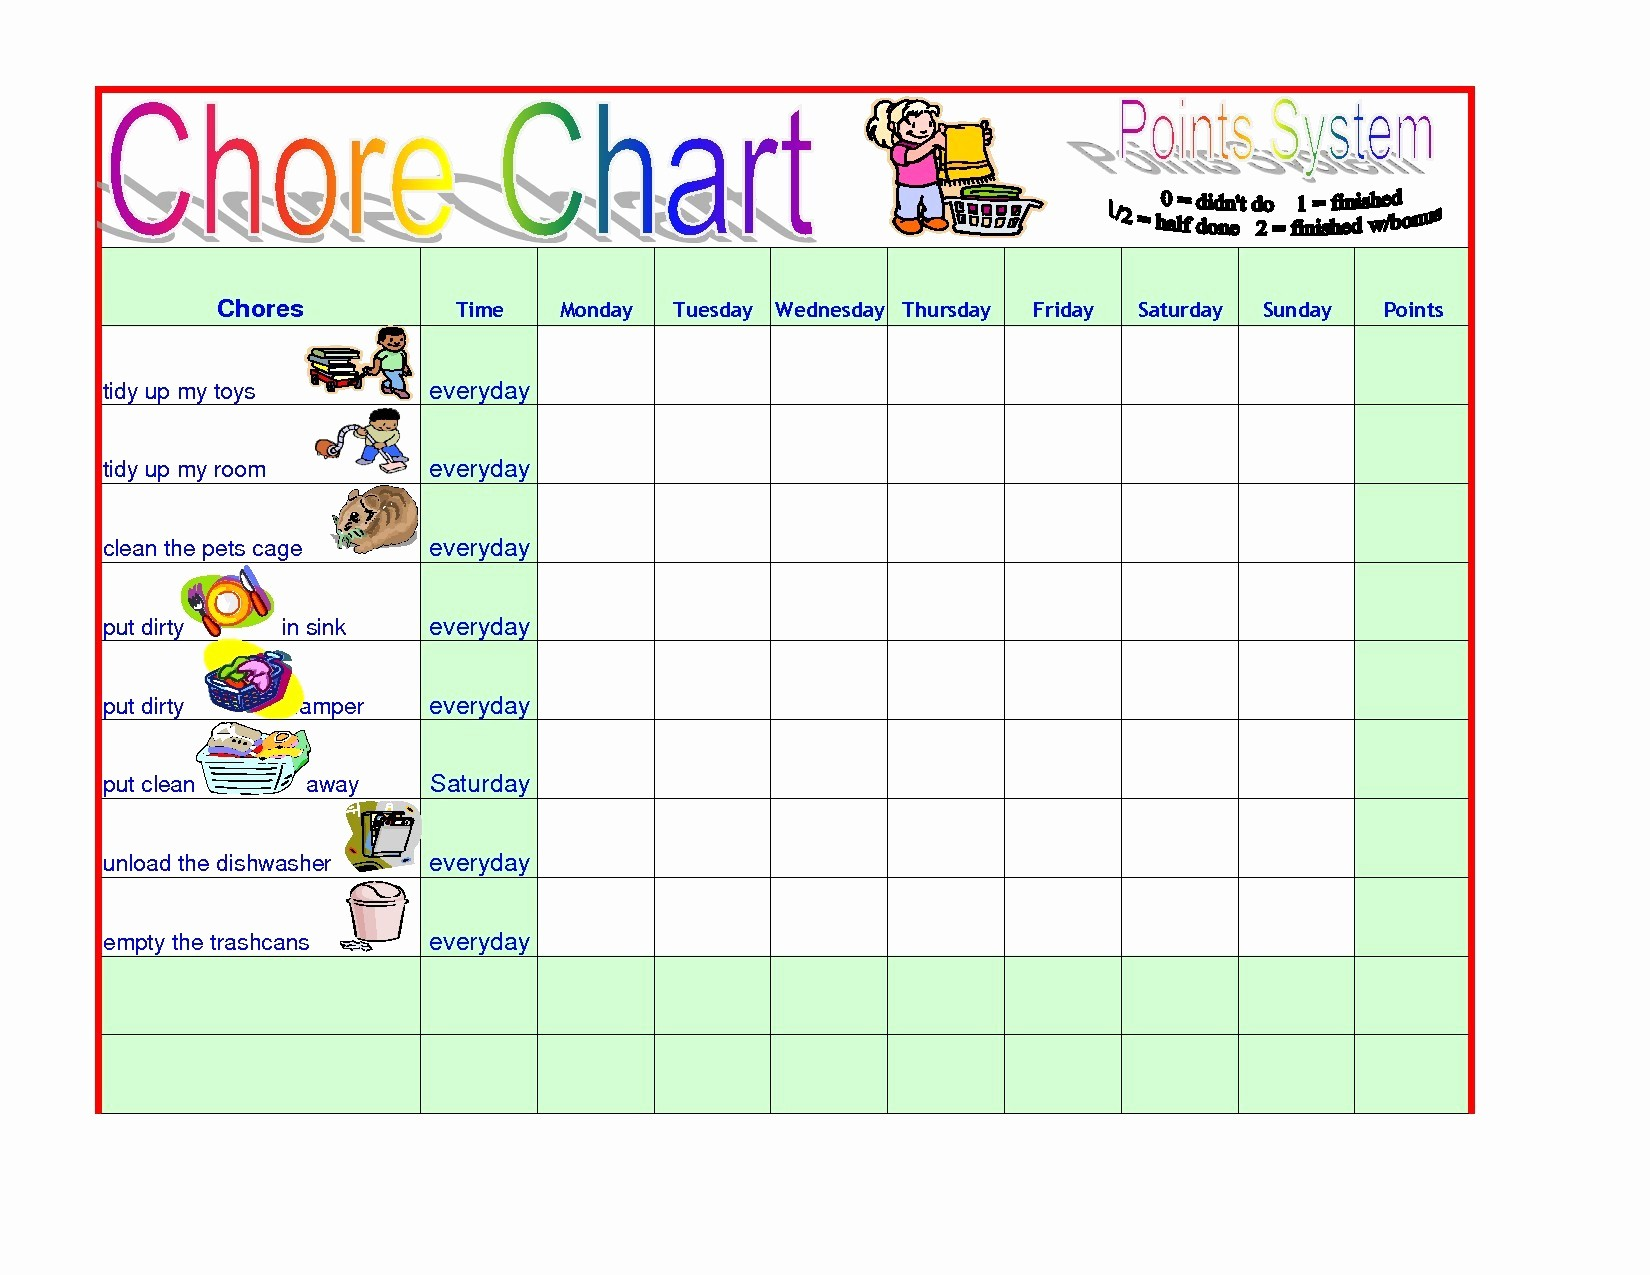 Chore List Template for Adults Unique Chore Chart Templates Save Chore Chart for Adults